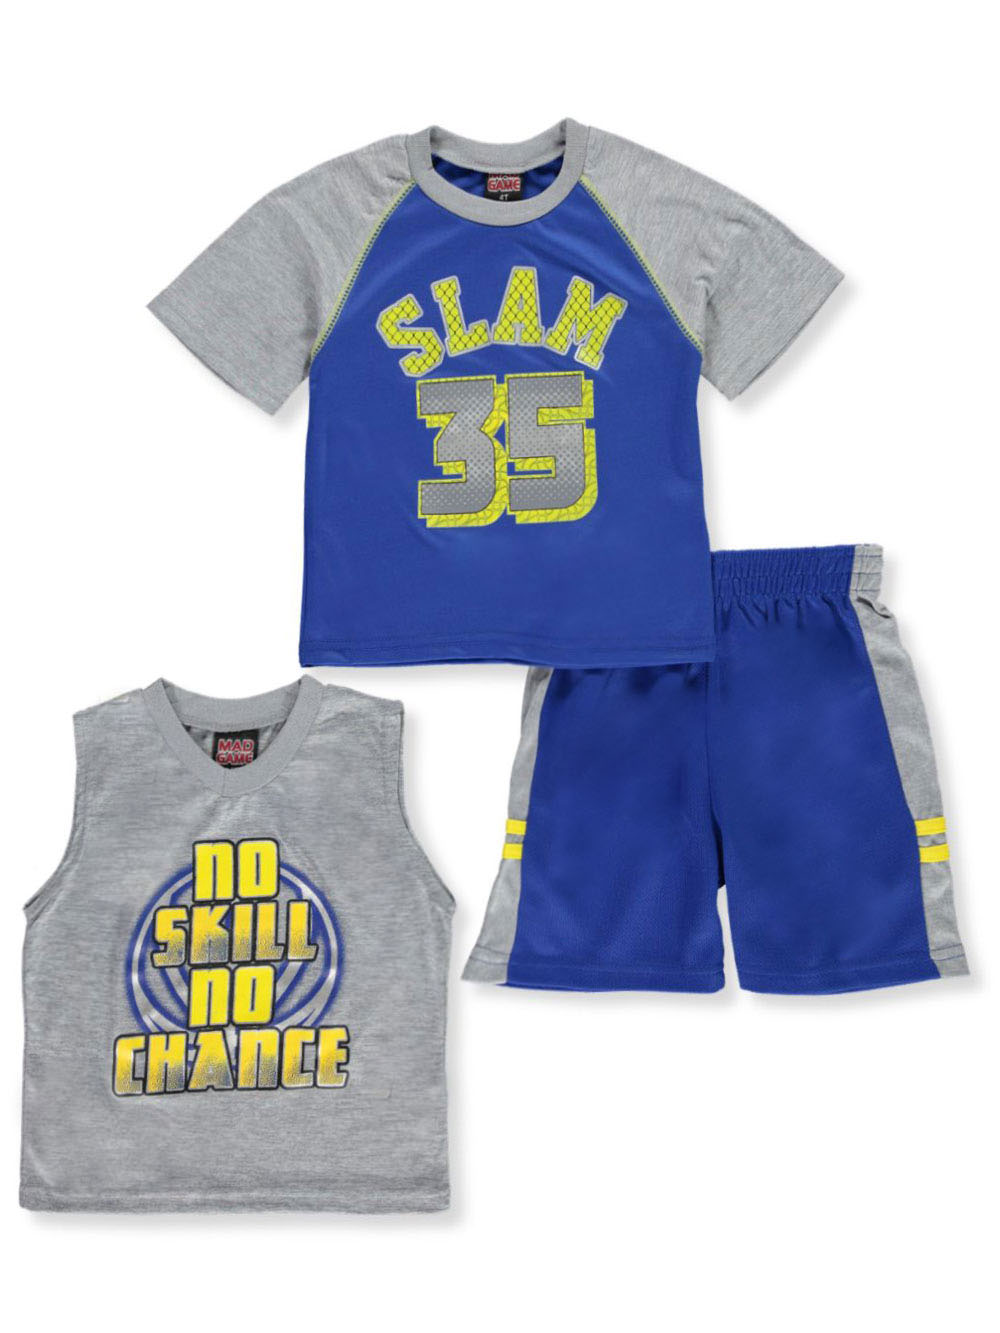 Size 2t Tanks for Boys